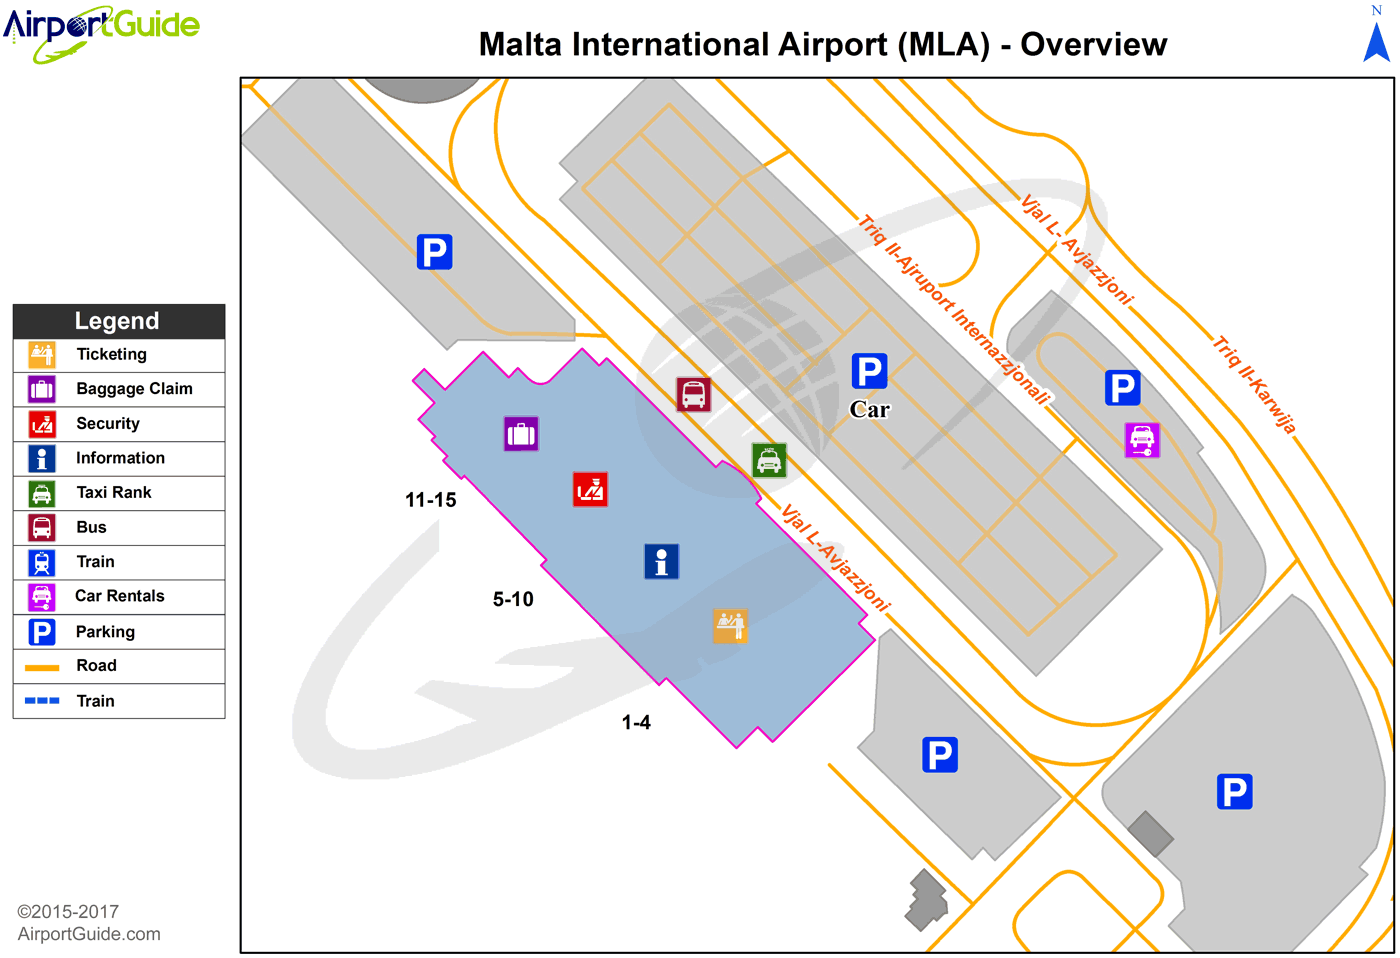 Luqa Malta International Mla Airport Terminal Map Overview Airport Guide Airport Map